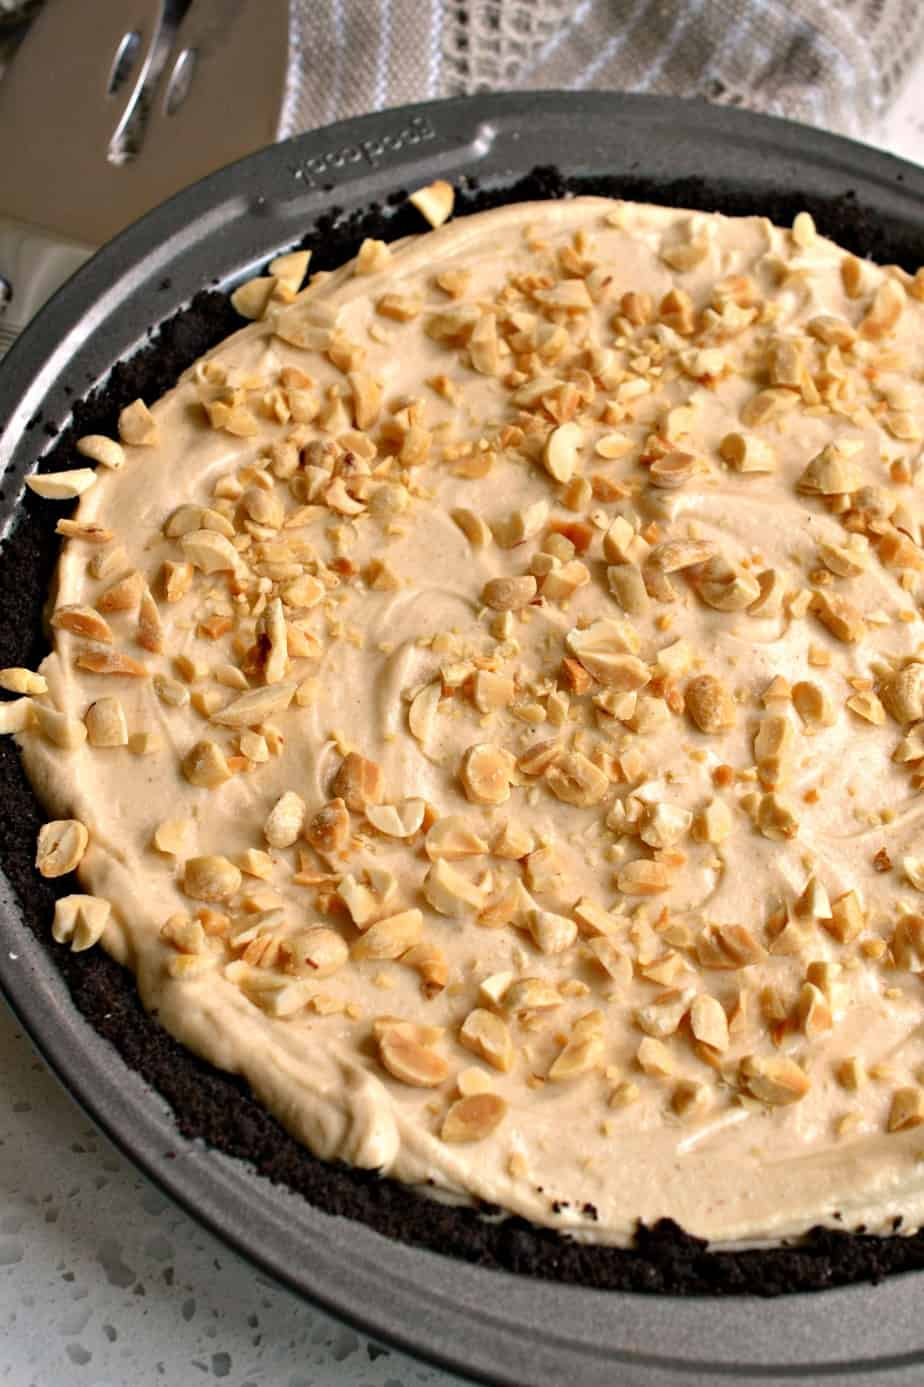 This easy no bake Peanut Butter Pie is topped with chopped peanuts, chocolate and butterscotch sauce.